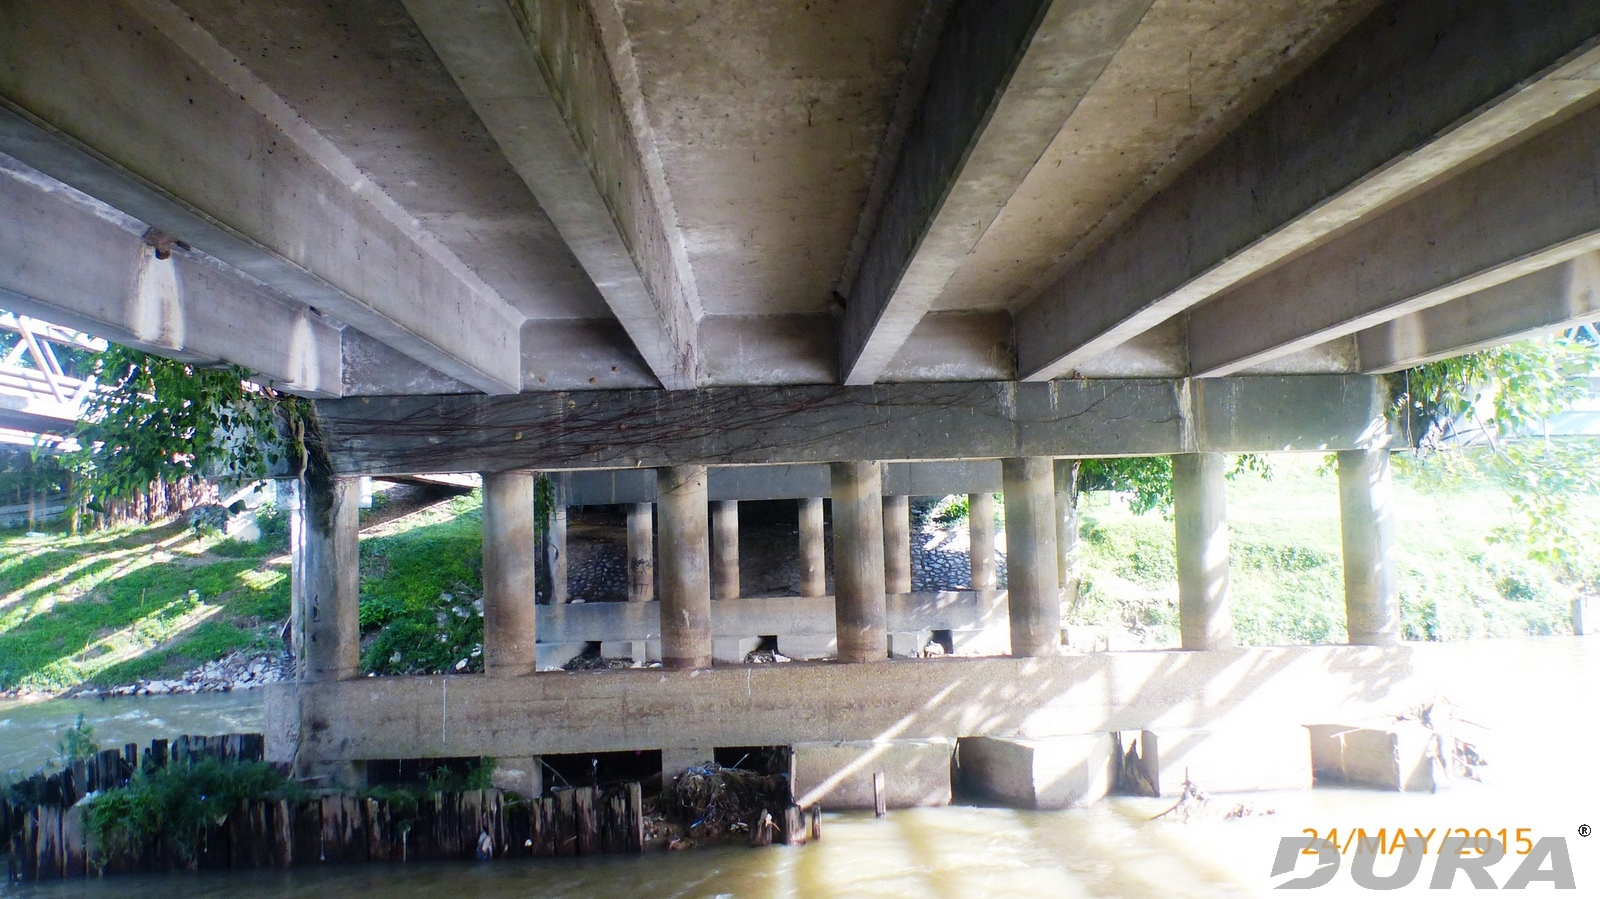 Underneath view of the existing old bridge.